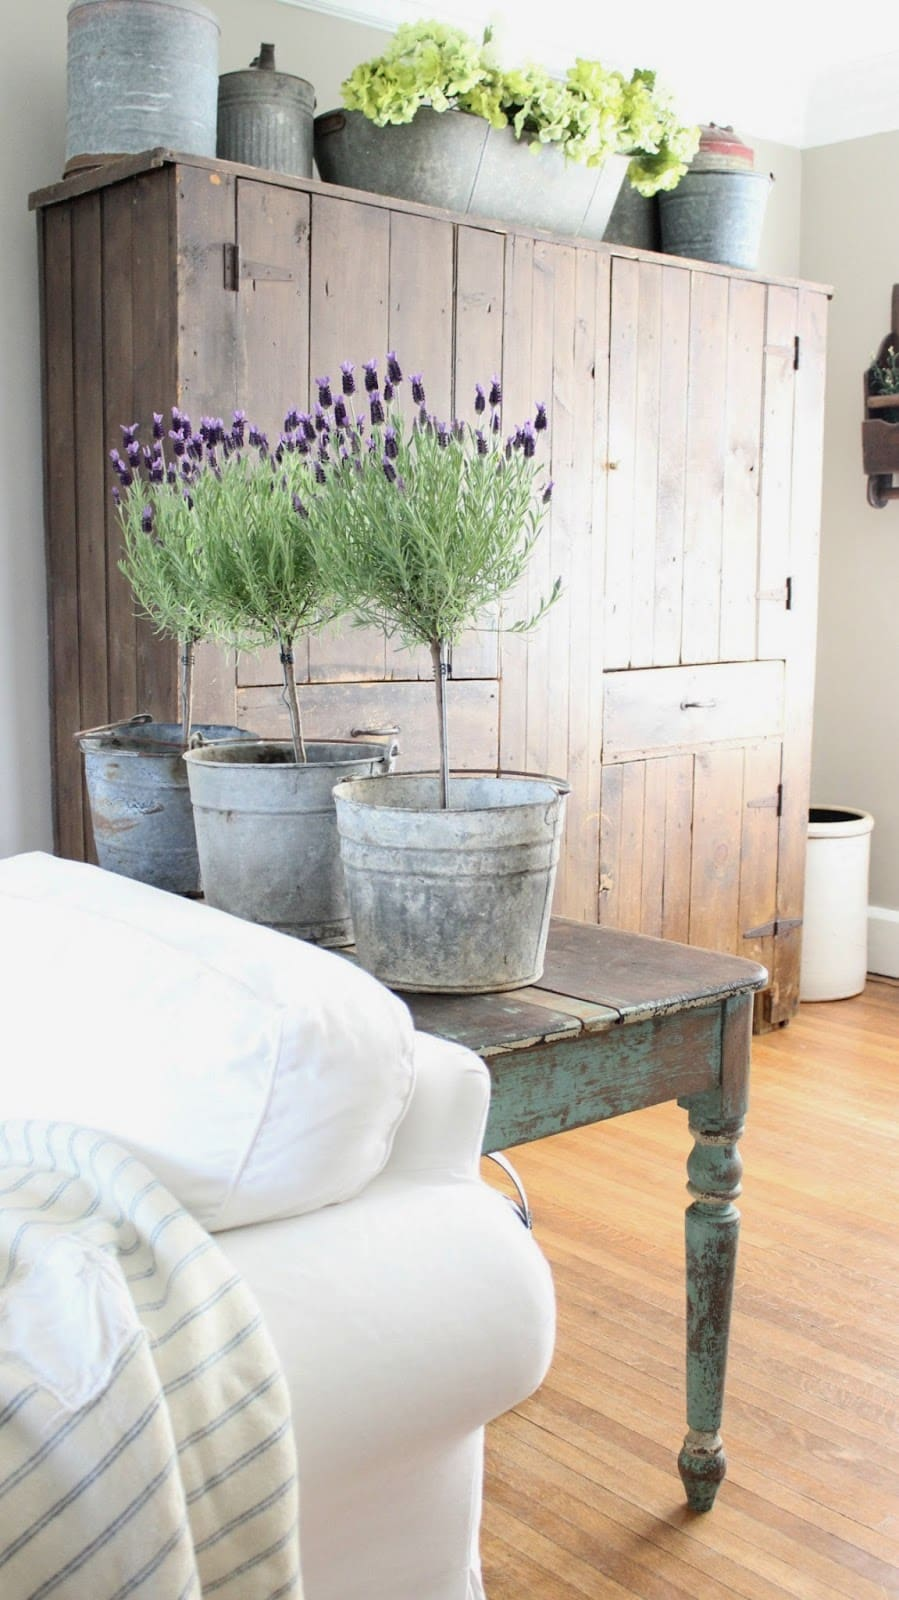 11 Ways To Decorate With Lavender Flowers Lolly Jane